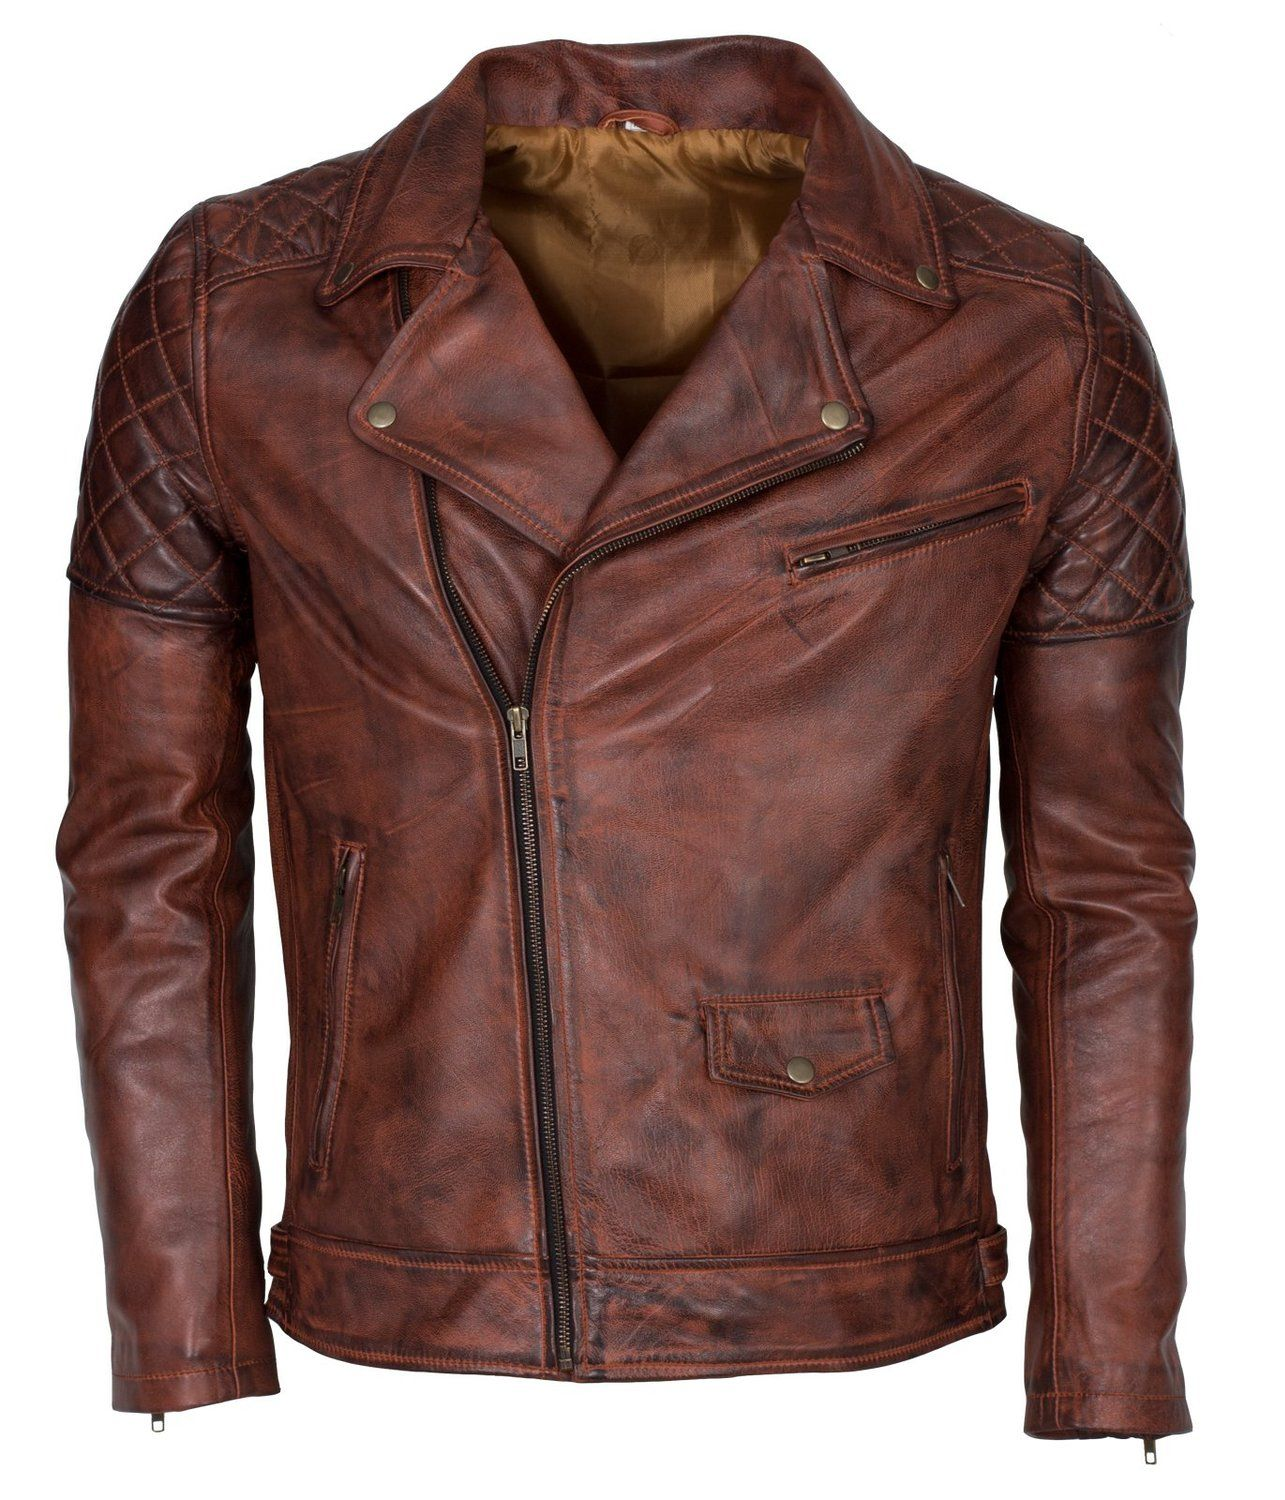 Brown Waxed Brando Designer Italian Leather Jacket At Amazon Men S Clothing Store 服 男性 皮衣